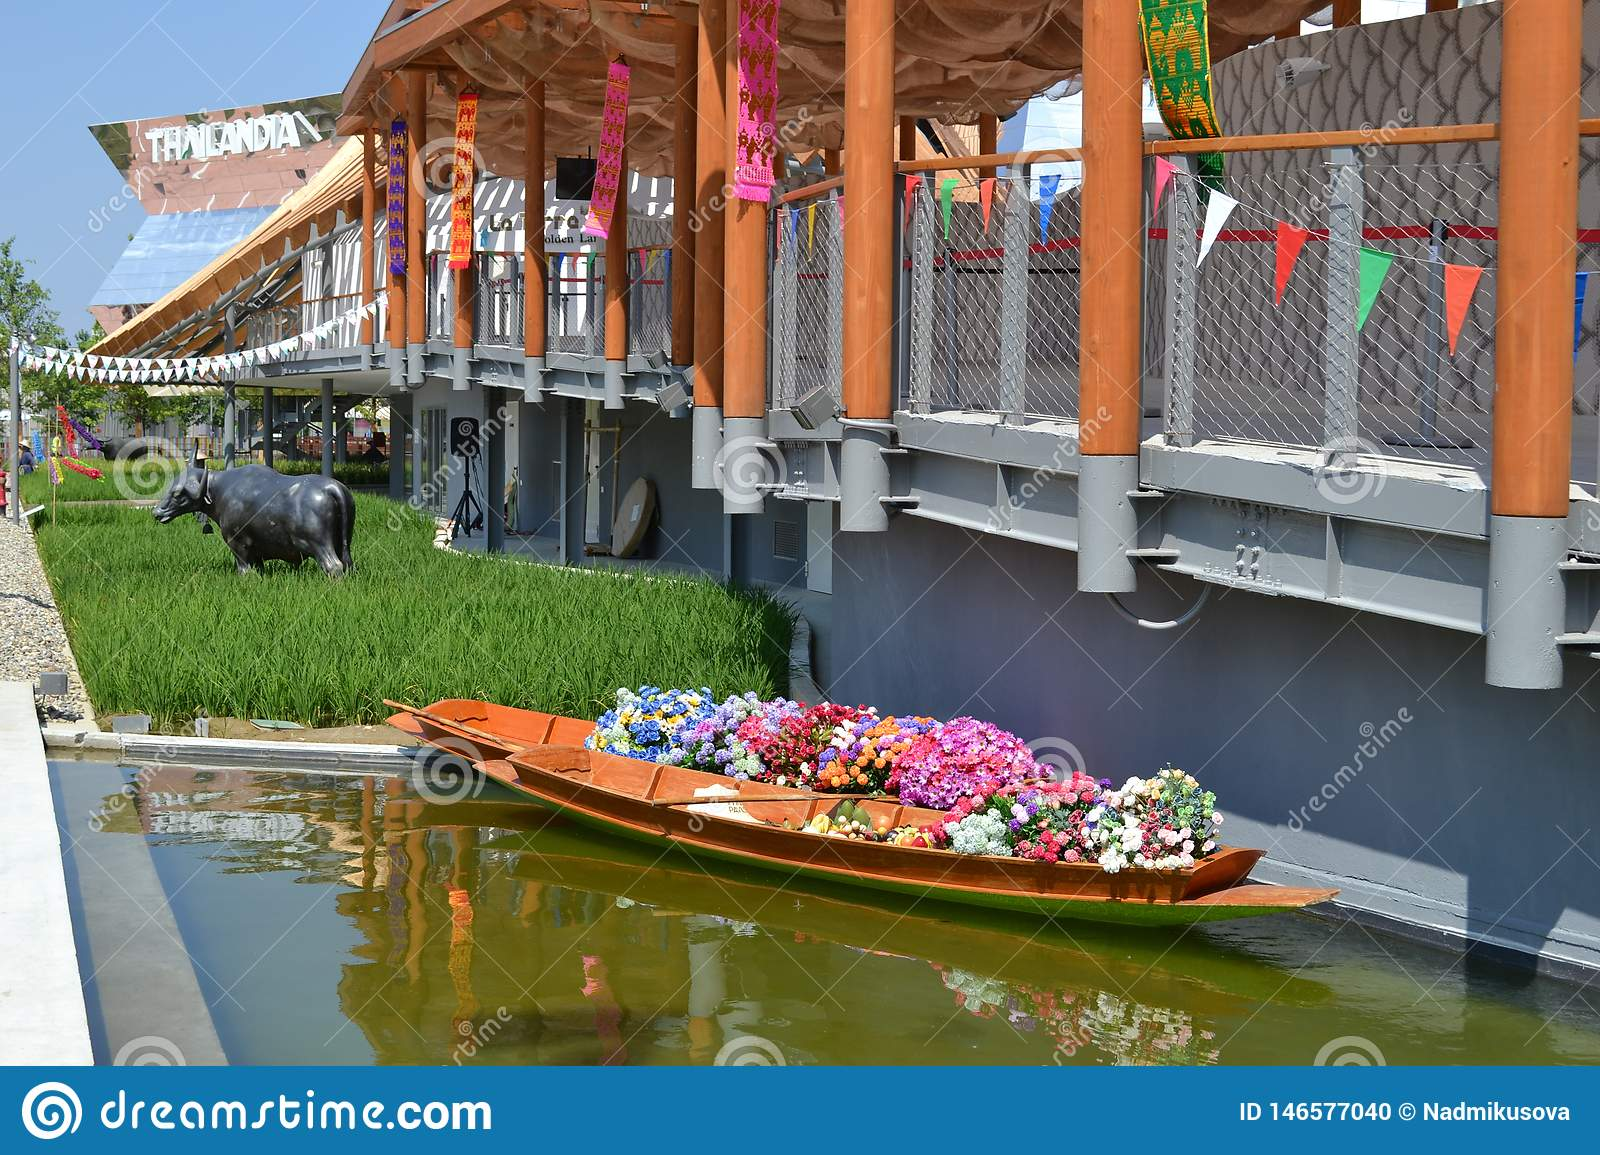 Thai wooden traditional boat for floating market filled up with flowers at the Thailand pavilion of the EXPO Milano 2015.